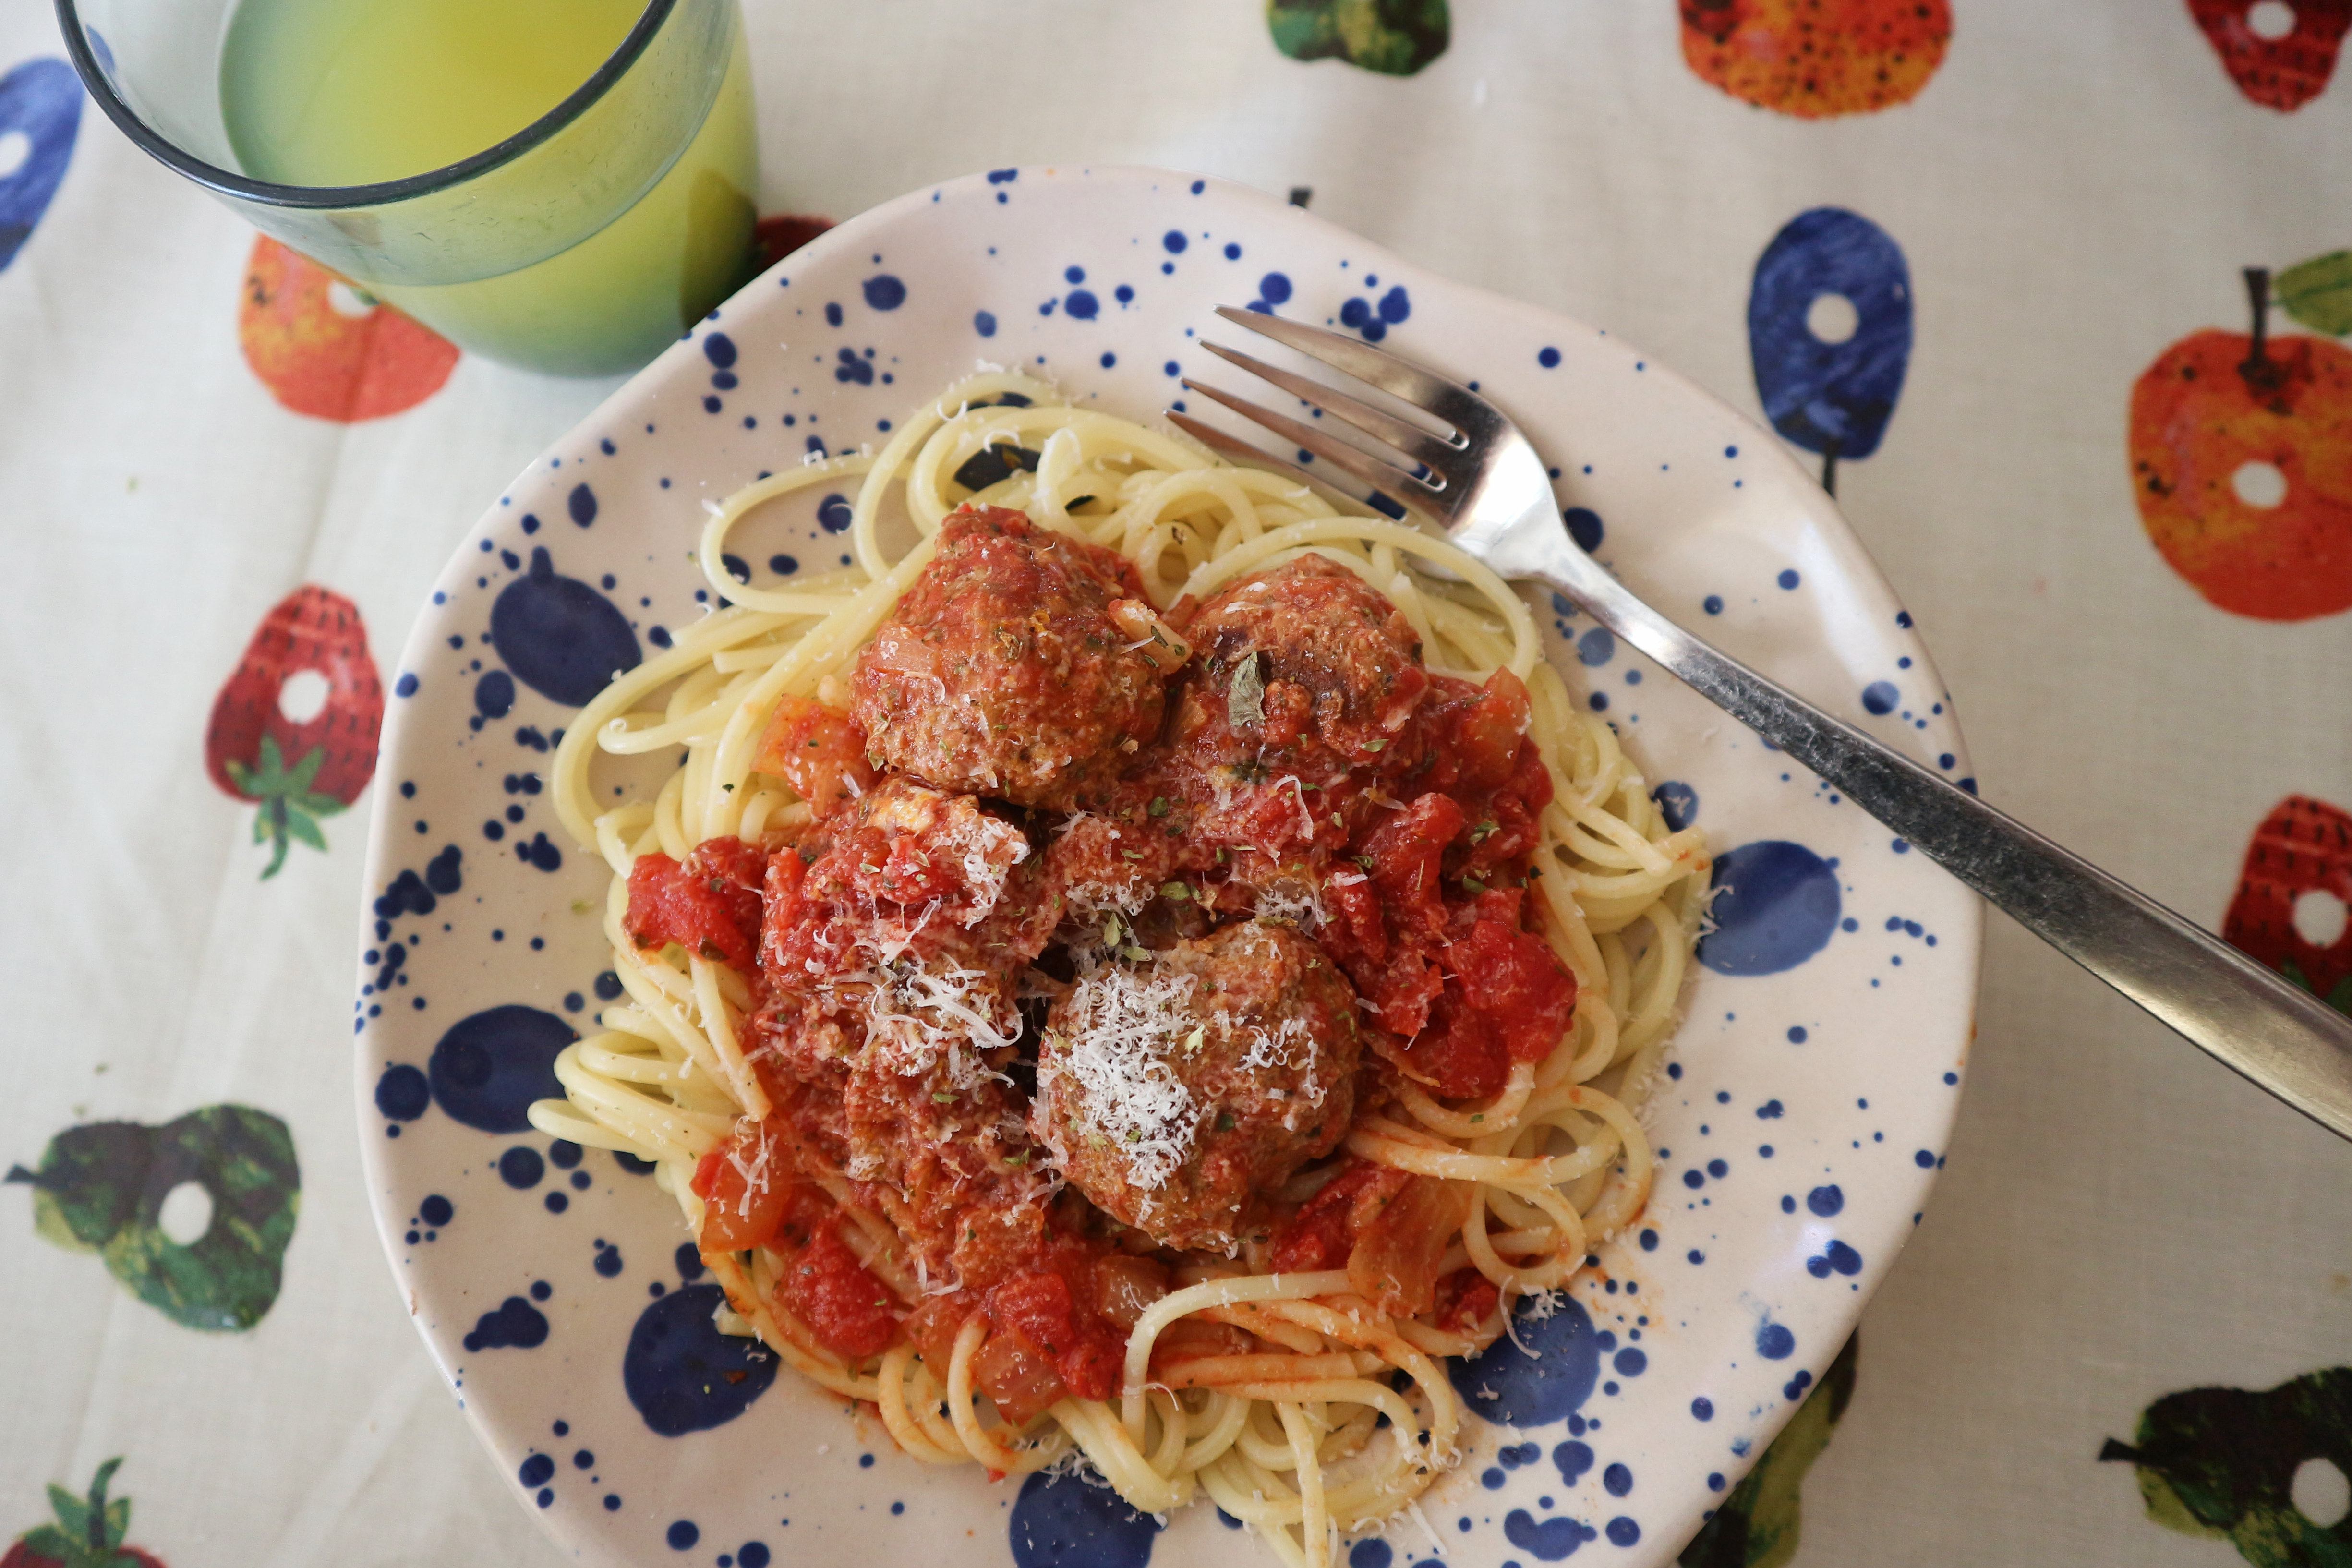 The best Spaghetti & Meatballs